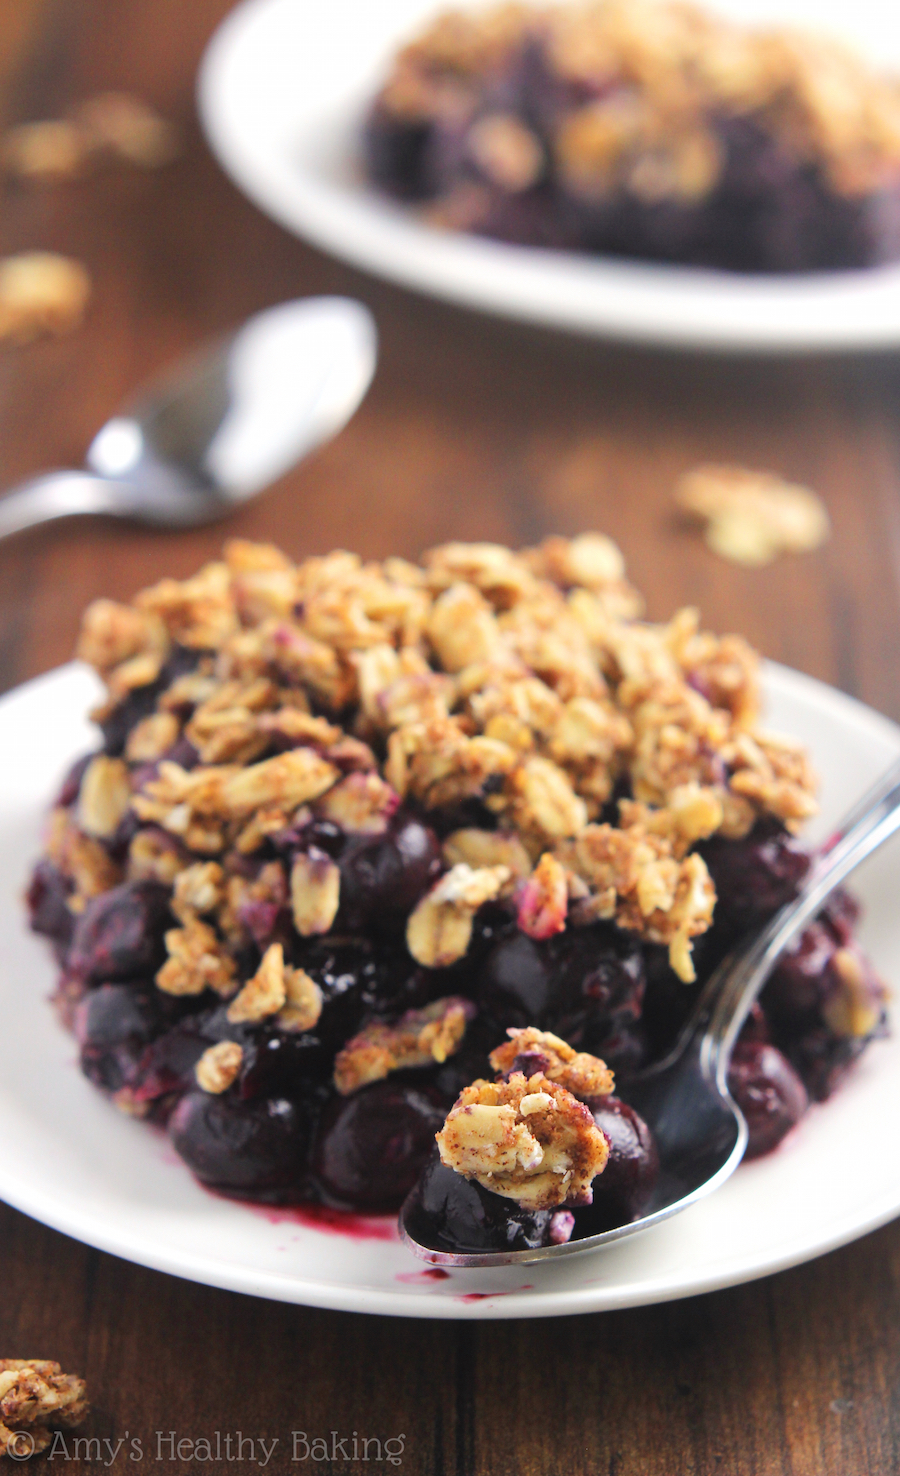 healthy fruit crumble is eating fruits for dinner healthy